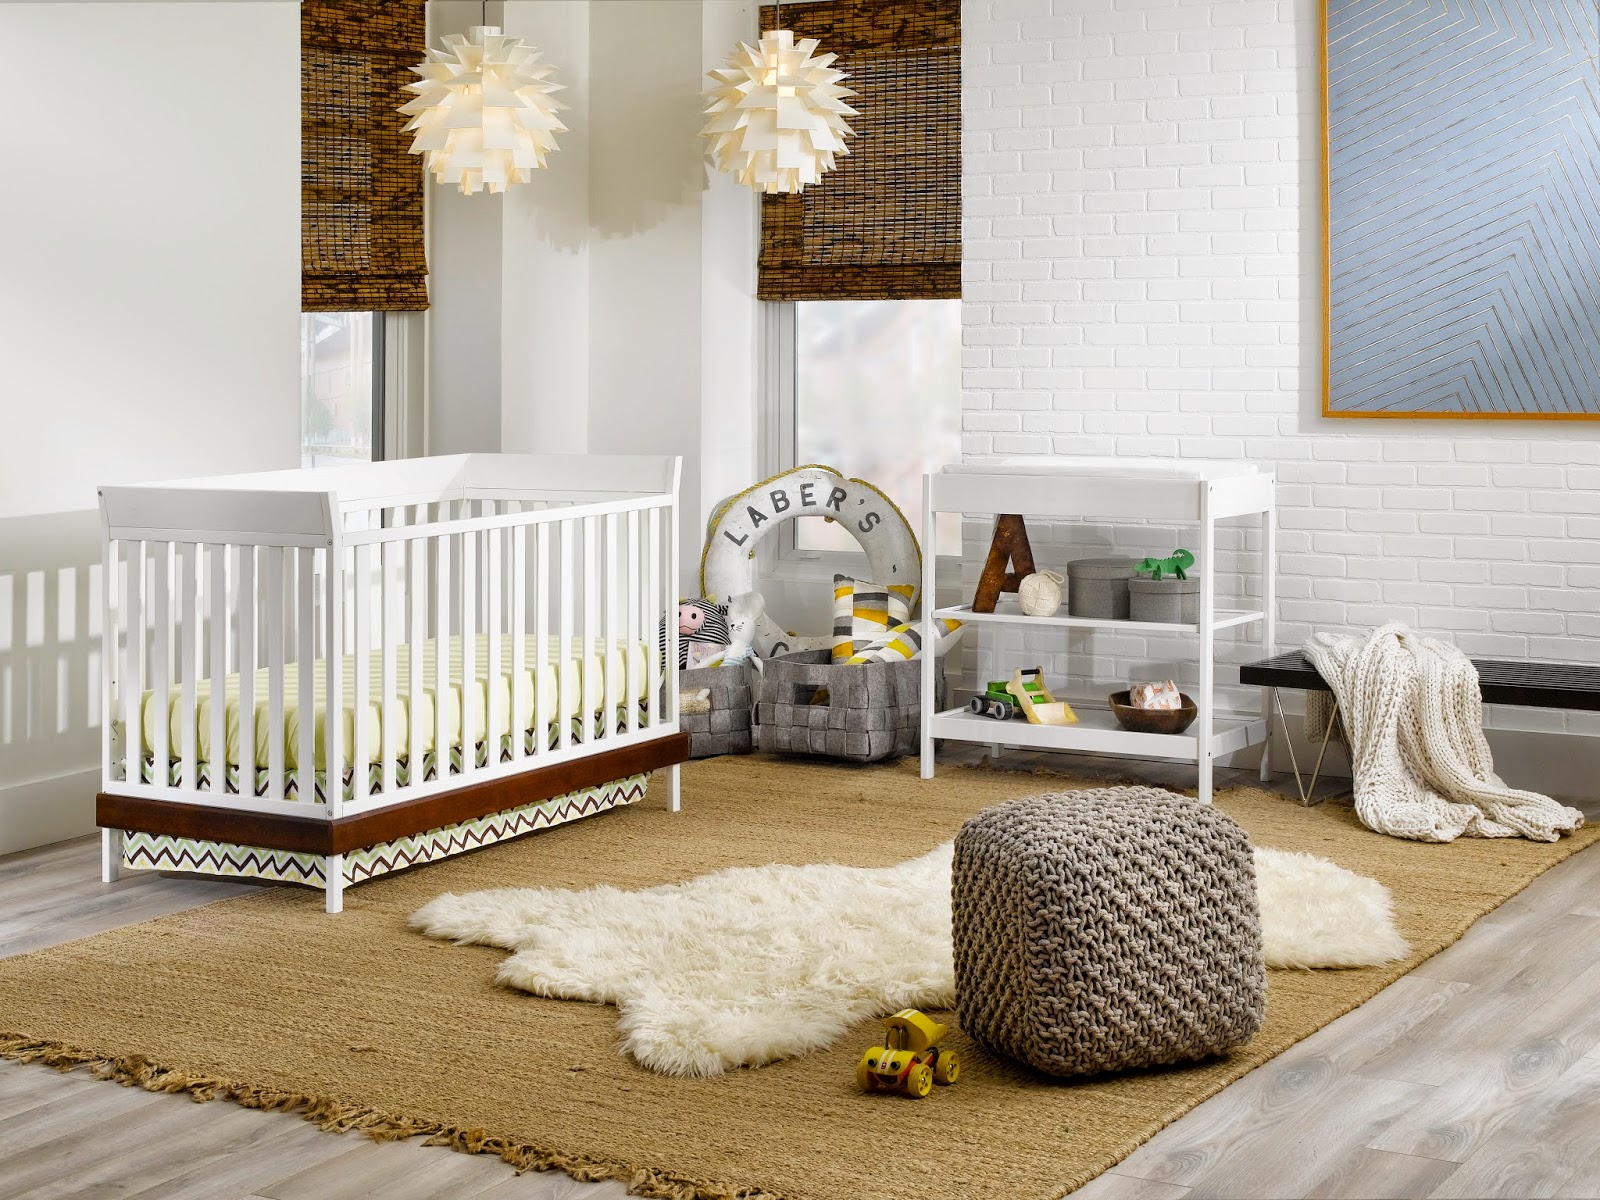 Urbini Dream Nursery Instagram Contest